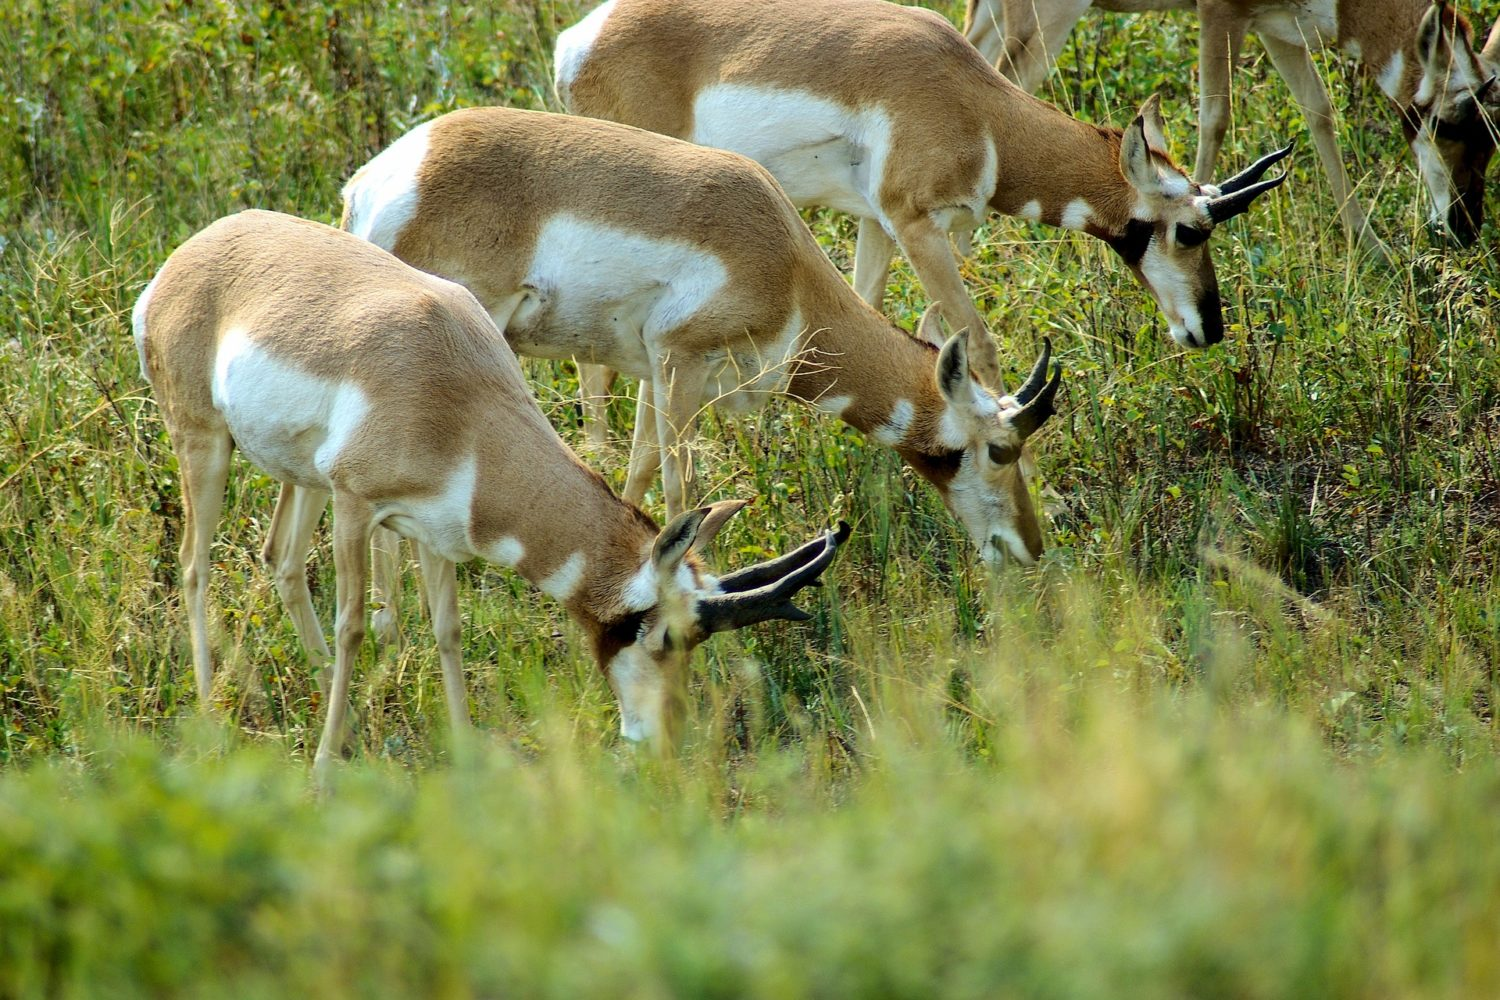 Wildlife such as antelope are often seen in this area